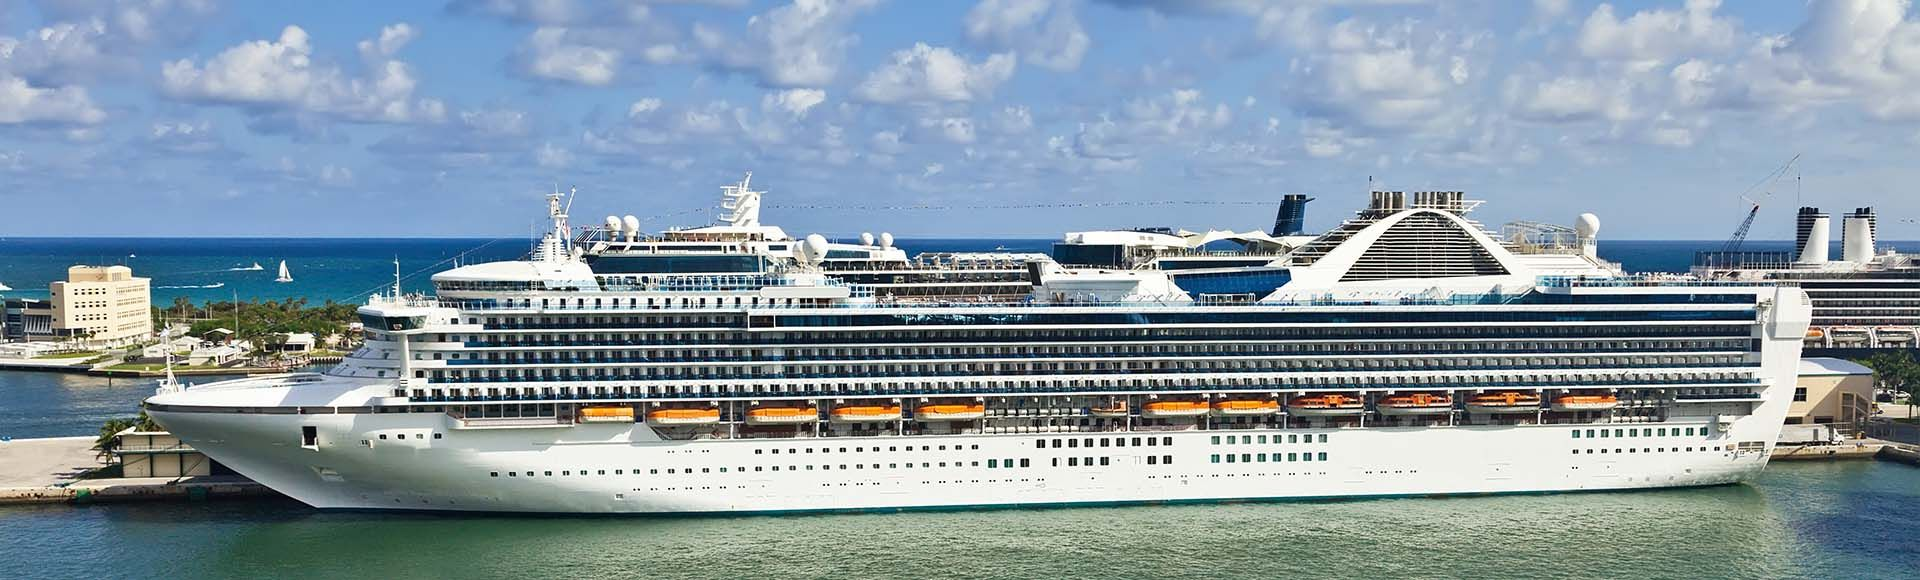 Port Everglades Cruise Parking Offers Friendly And Free Services Such As Shuttle Tire Pumps Snacks Assistance With Accessories Bathr With Images Cruise Everglades Park